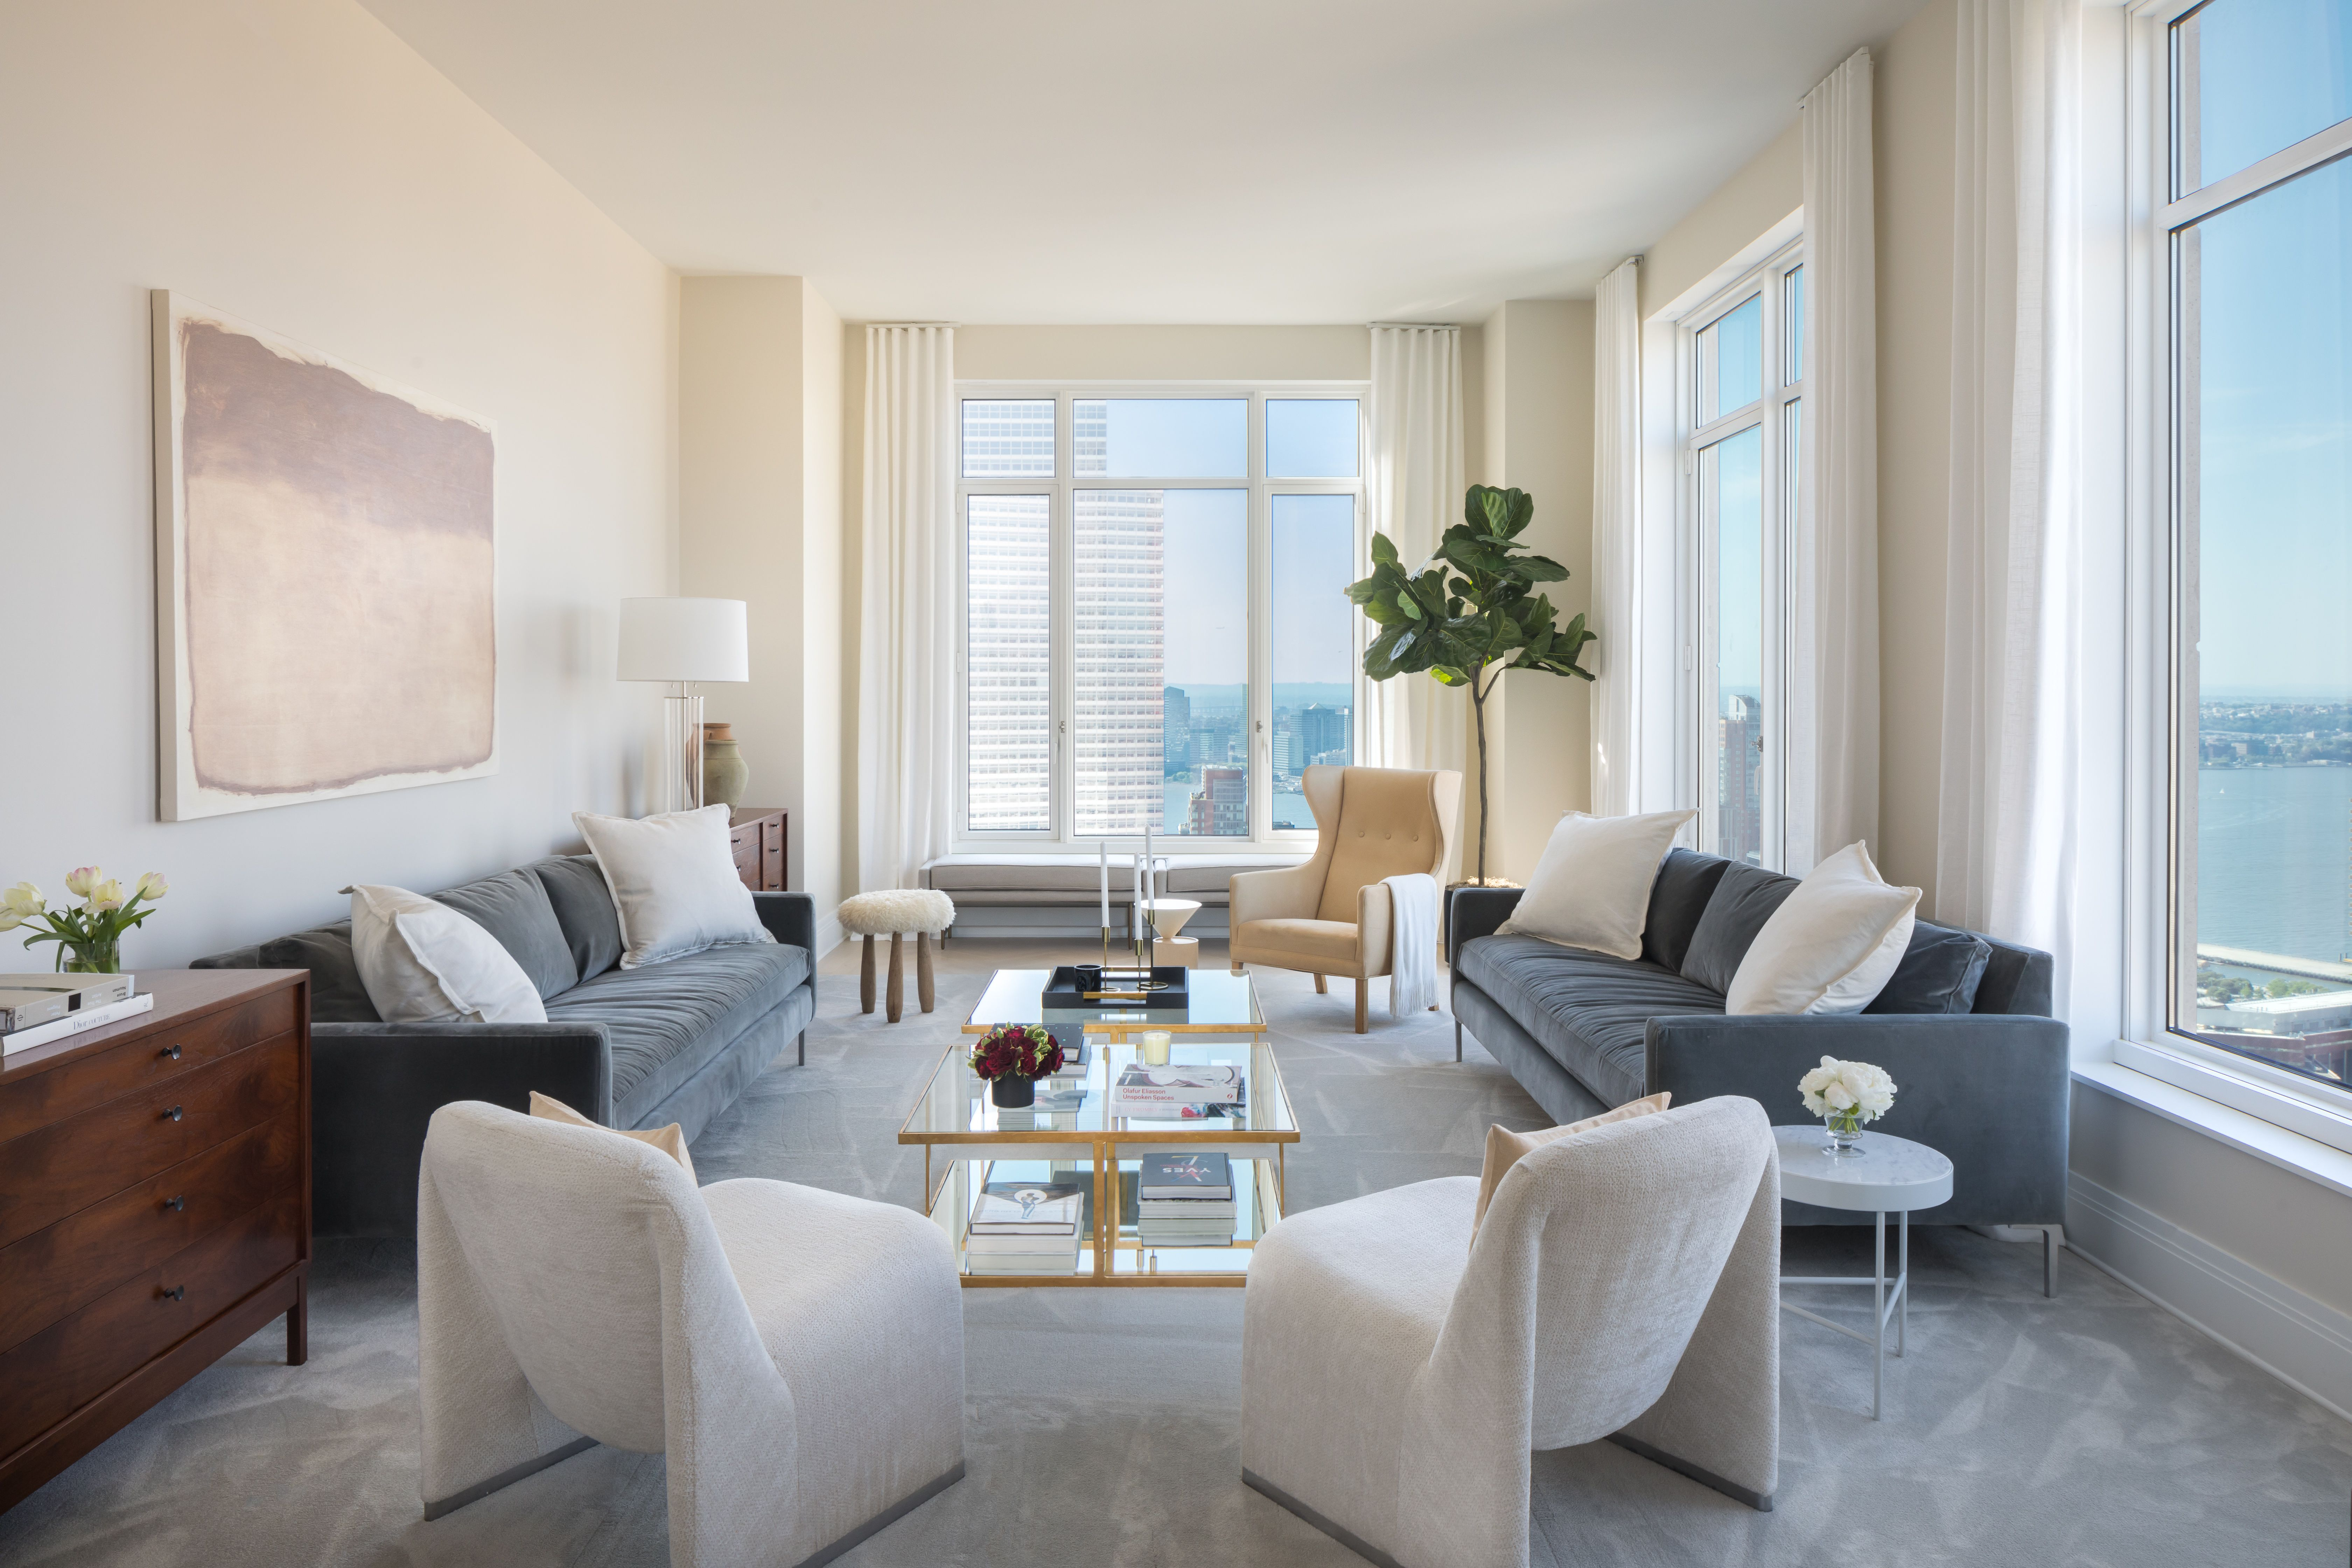 House Tour: Living in the Four Seasons